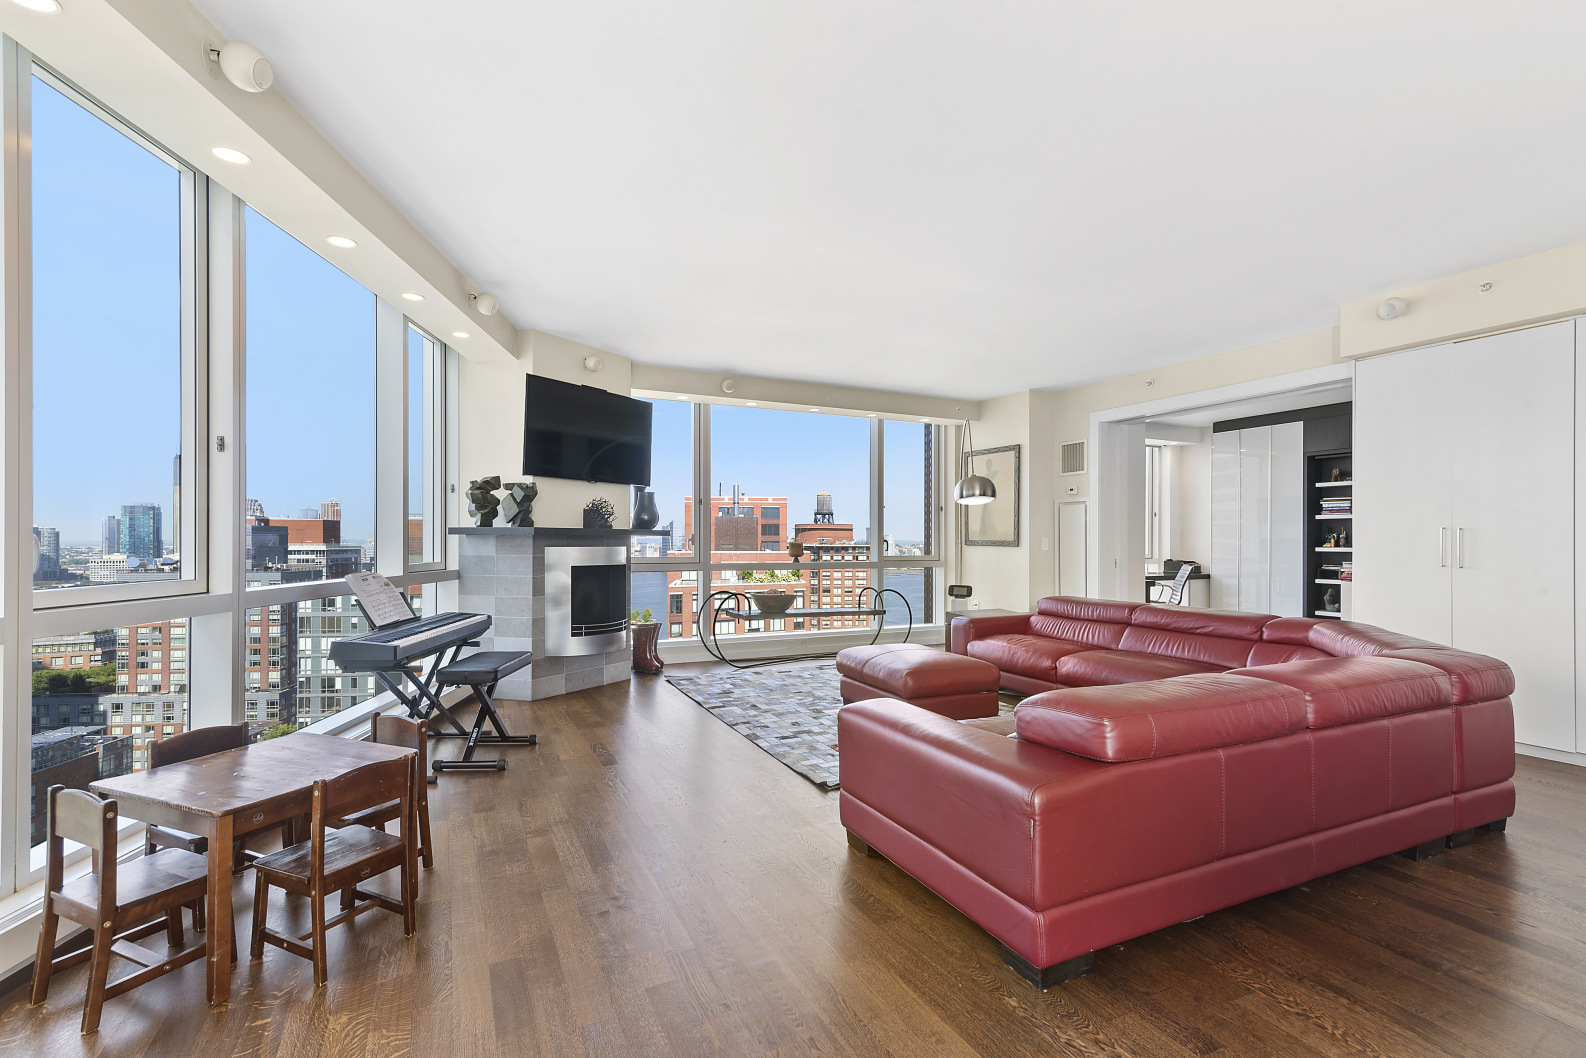 """Those wishing to attend the """"open house by appointment"""" must first inquire to schedule an appointment beforehand.Located on one of the highest floors of Tribeca's first luxury high rise condominium, apartment 27A offers a sprawling 2,200 square feet featuring 9' ceilings, 3 bedrooms, 3 full bathrooms, and 3 exposures (East, South, West). Endless views await through floor-to-ceiling windows found in every room of the home. The oversized corner-great-room (measuring 37' X 21') comfortably holds an open chef's kitchen with premium appliances, formal dining area, and an expansive living room with a working gas fireplace.No expense was spared when the home was upgraded to include Somfy motorized shades covering all windows (including both solar shades + blackout shades in bedrooms), Lutron lighting throughout, walls of custom built-in storage in every room, beautiful dark stained hardwood floors, and a sound system. The installation of a sliding panel pocket wall allows the 3rd bedroom to double as a home office complete with a cleverly concealed murphy bed behind the shelving (see video tour for a demonstration of the murphy bed). A gracious foyer is found at the entrance of the home, and down a nearly 30' hallway one finds the spacious bedroom ensuite, 2nd bedroom, and additional bath. The ensuite bathroom has a walk-in glass shower and double sink vanity, the second bathroom has a deep soaking tub, and another walk-in shower is found in the 3rd bathroom. Two pullout desks are concealed in wall of storage in the 2nd bedroom.The open chef's kitchen features granite countertops, a subzero refrigerator, viking gas range, Miele dishwasher, 2 refrigerated drawers built into the extended island, and 2 side-by-side refrigerated wine storage units.200 Chambers Street is Tribeca's first luxury high rise development, designed by acclaimed architects Costas Kondylis & Partners and developed by Jack Resnick & Sons. The magnificent double height ceiling lobby is attended 24 hours b"""